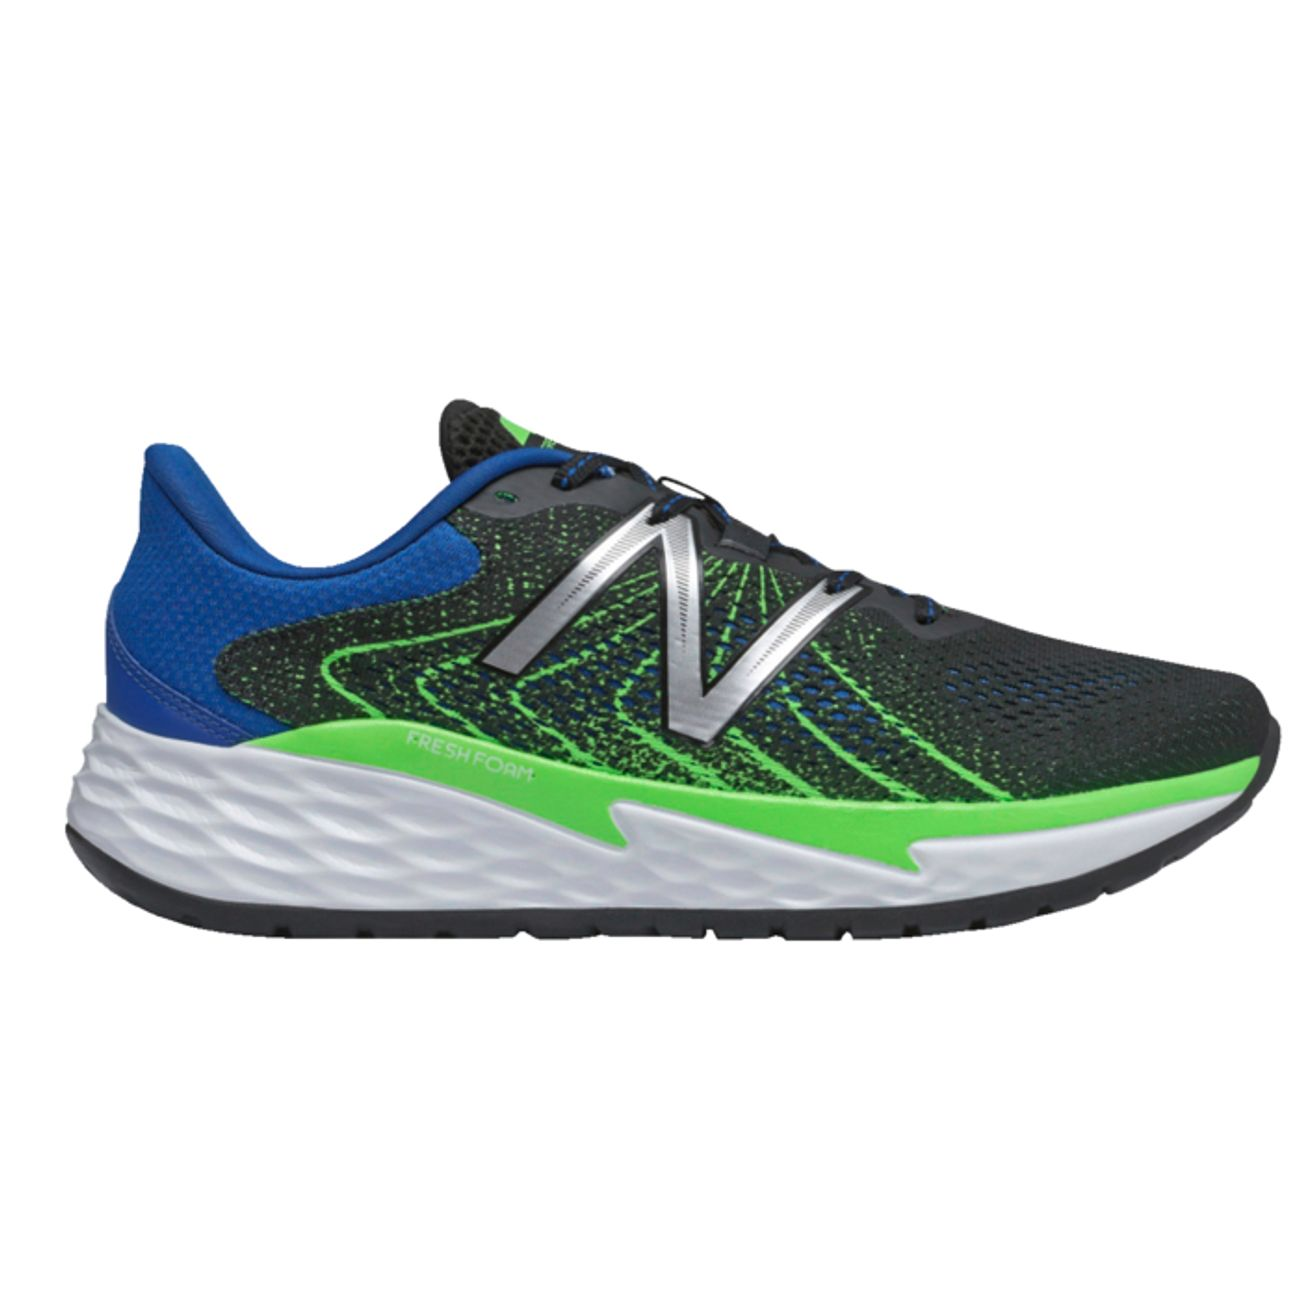 CHAUSSURES Route homme NEW BALANCE EVARE